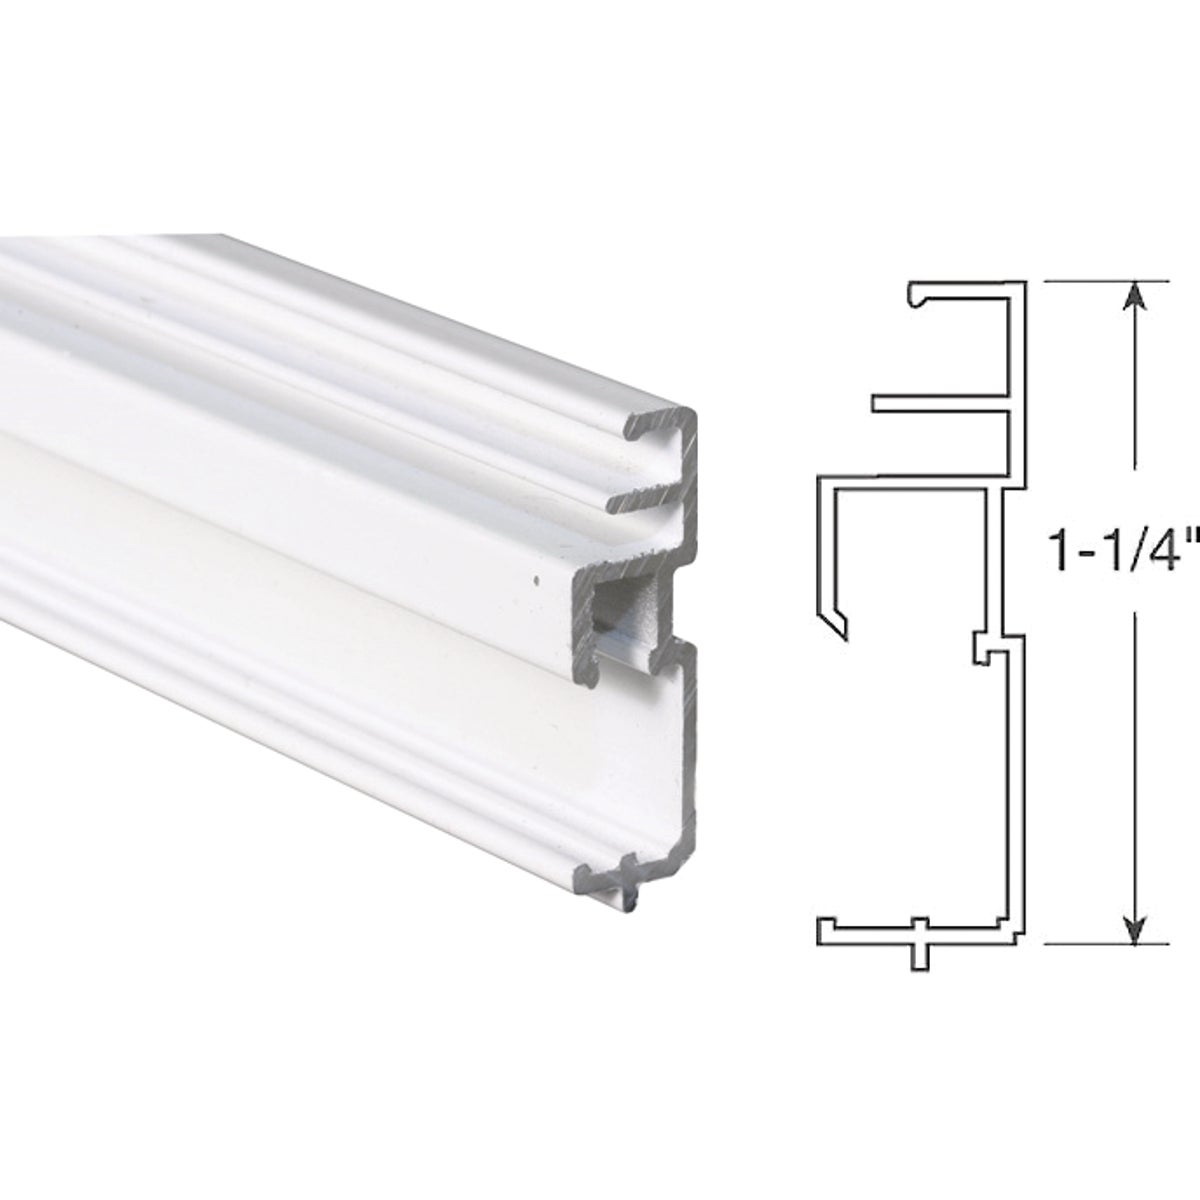 1-1/4WHT BTM TT SC FRAME - PL14206 by Prime Line Products